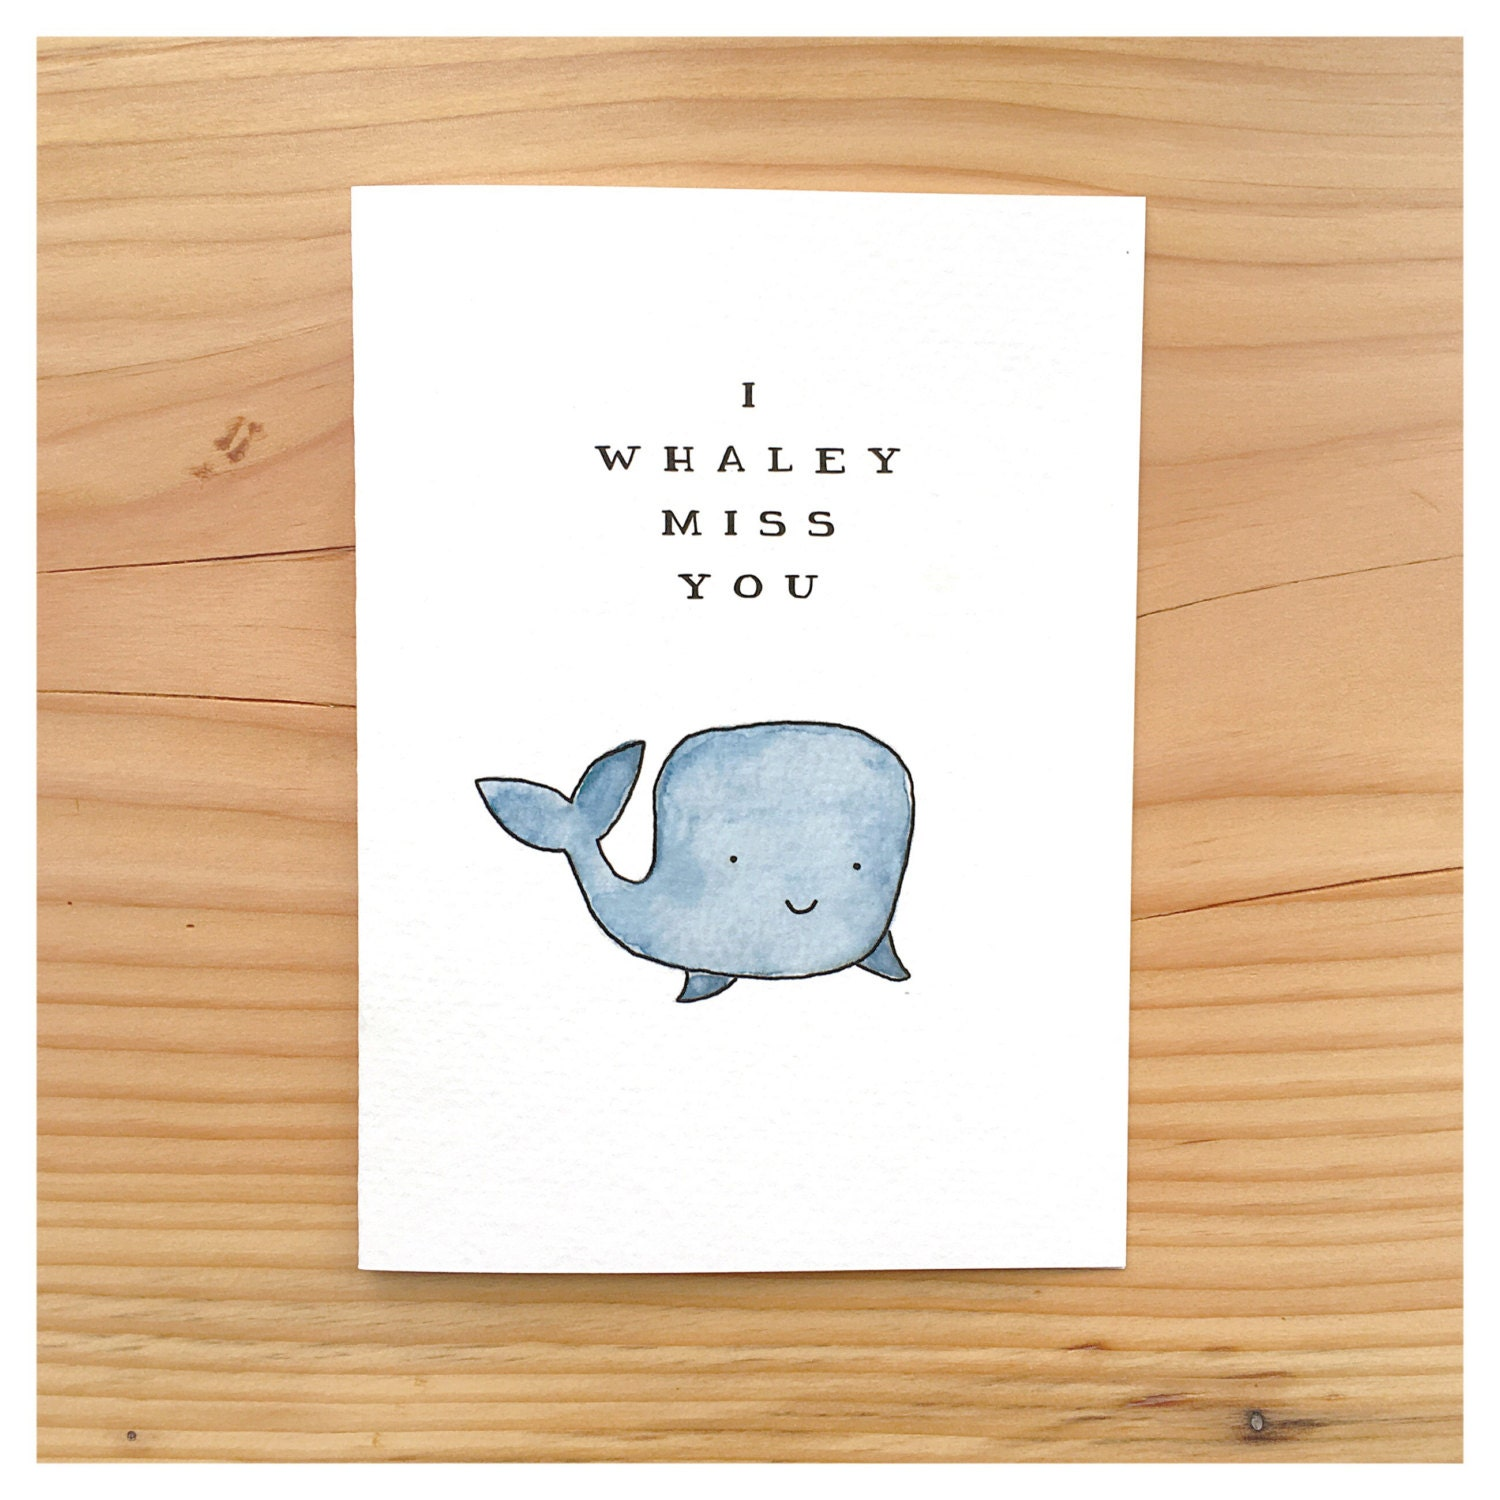 Miss you miss you card cute miss you card cute card whale miss you miss you card cute miss you card cute card whale card pun card cute birthday card funny birthday card for her for him kristyandbryce Image collections